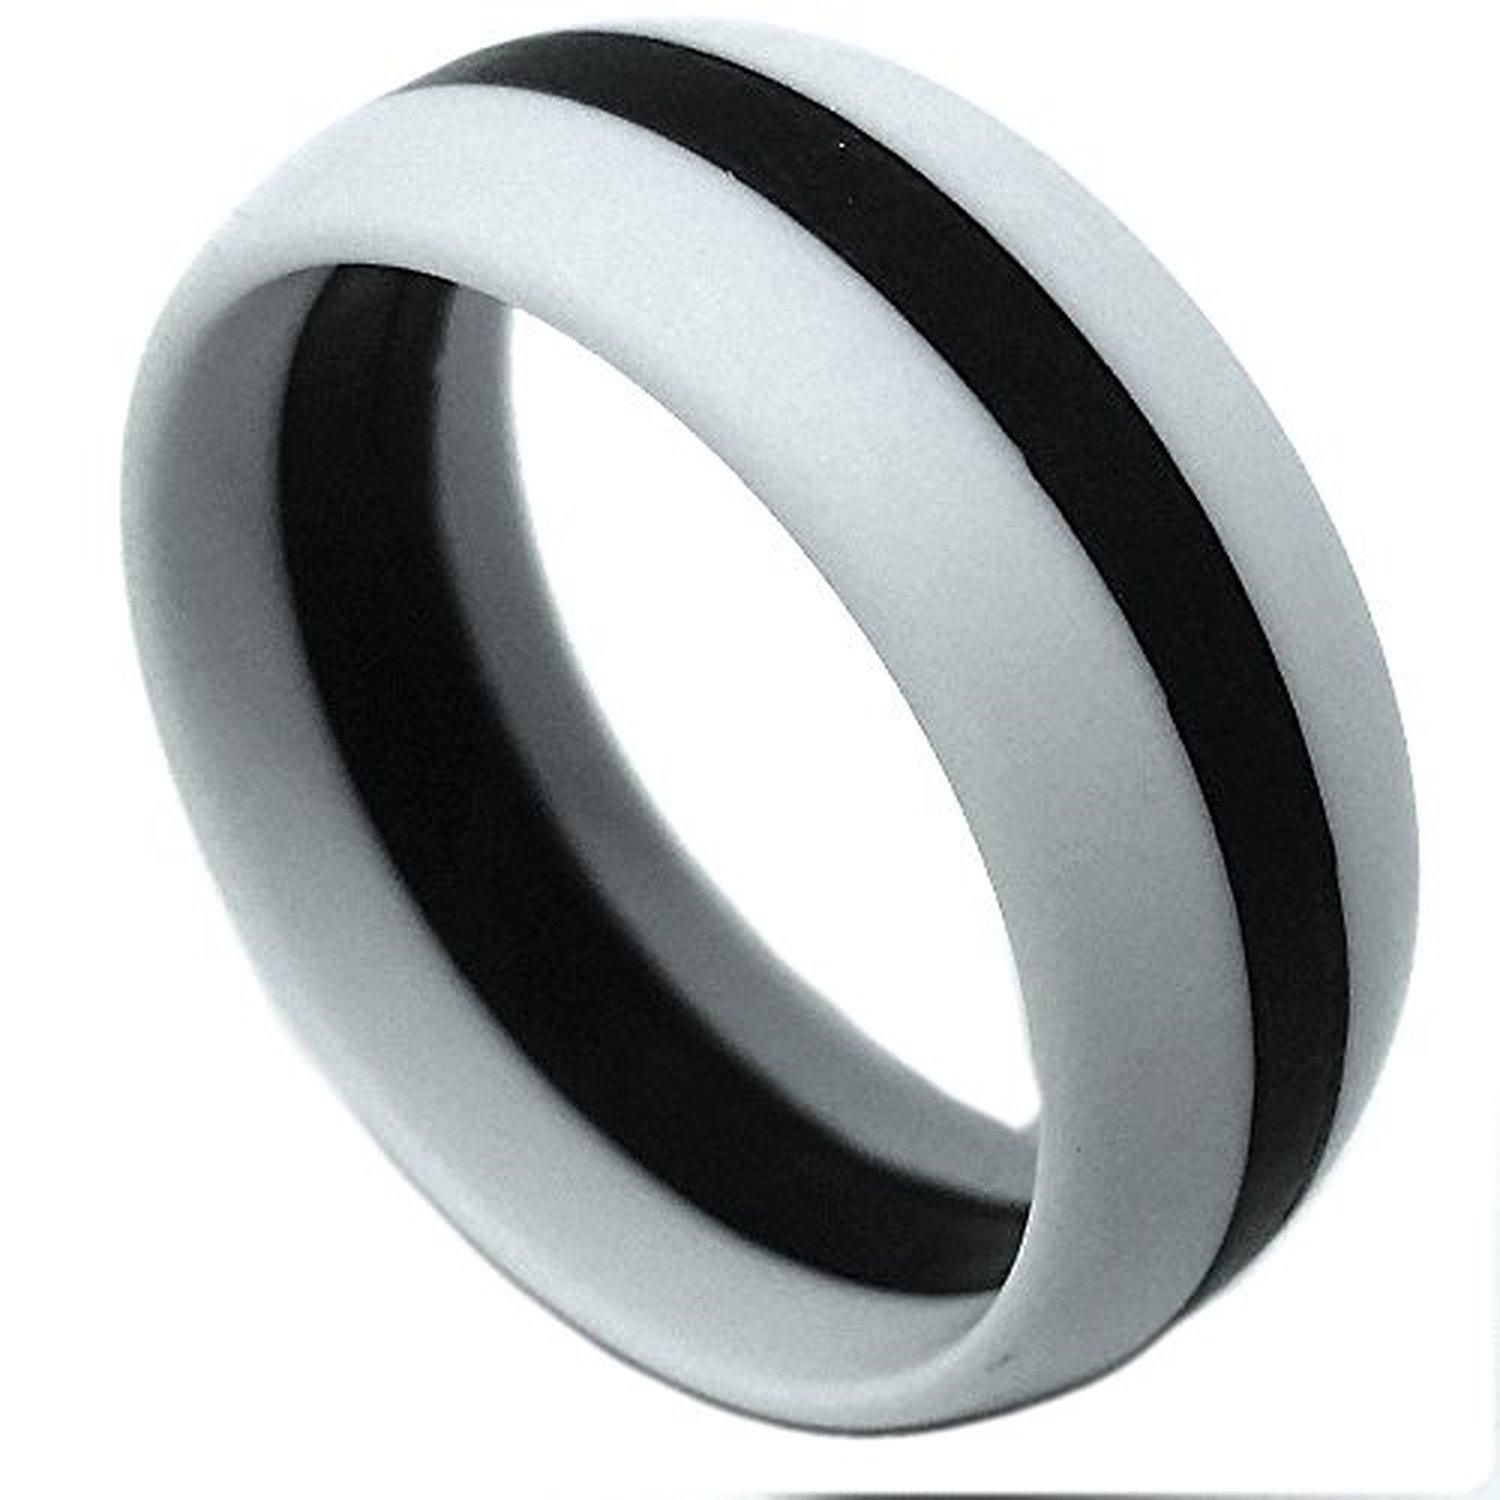 wedding bands provide much hard ring working rubberdiamonds made medical tough pin premium silicone from rings safer men stylish active and s women comfort total alternative grade are